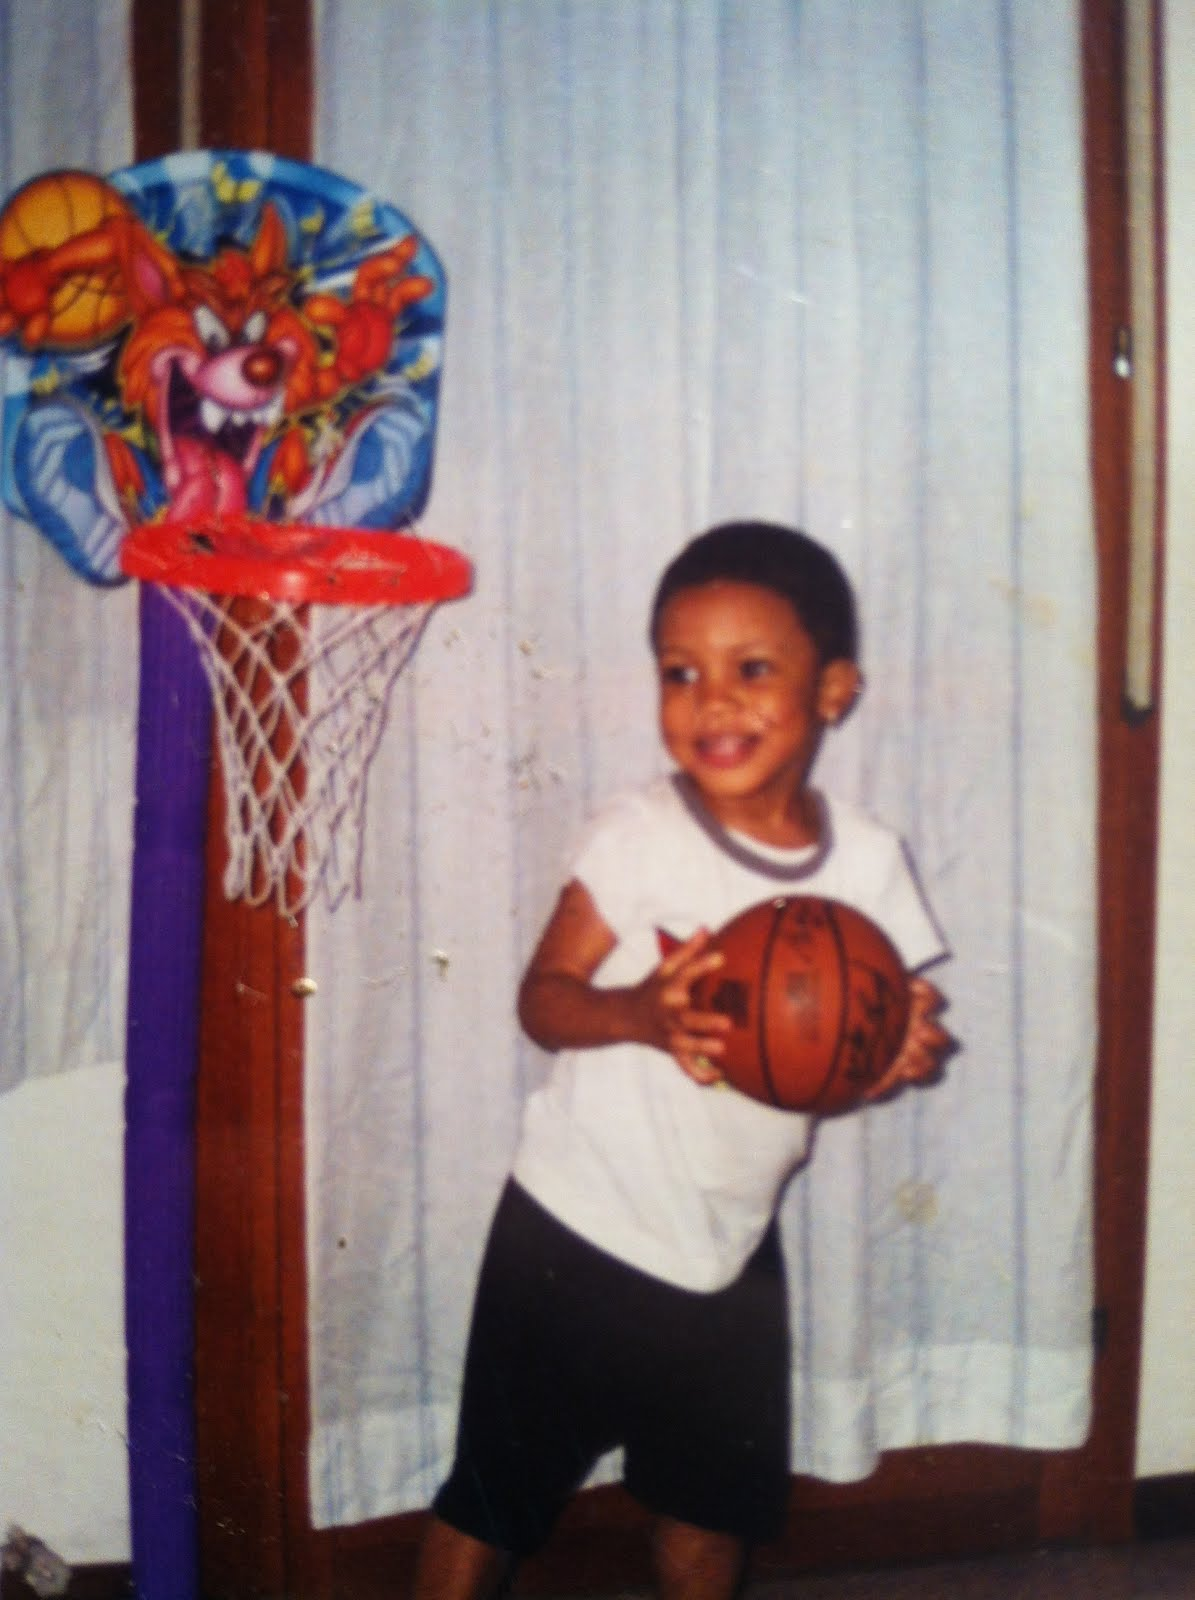 Julian Newman 11 year old Basketball Prodigy